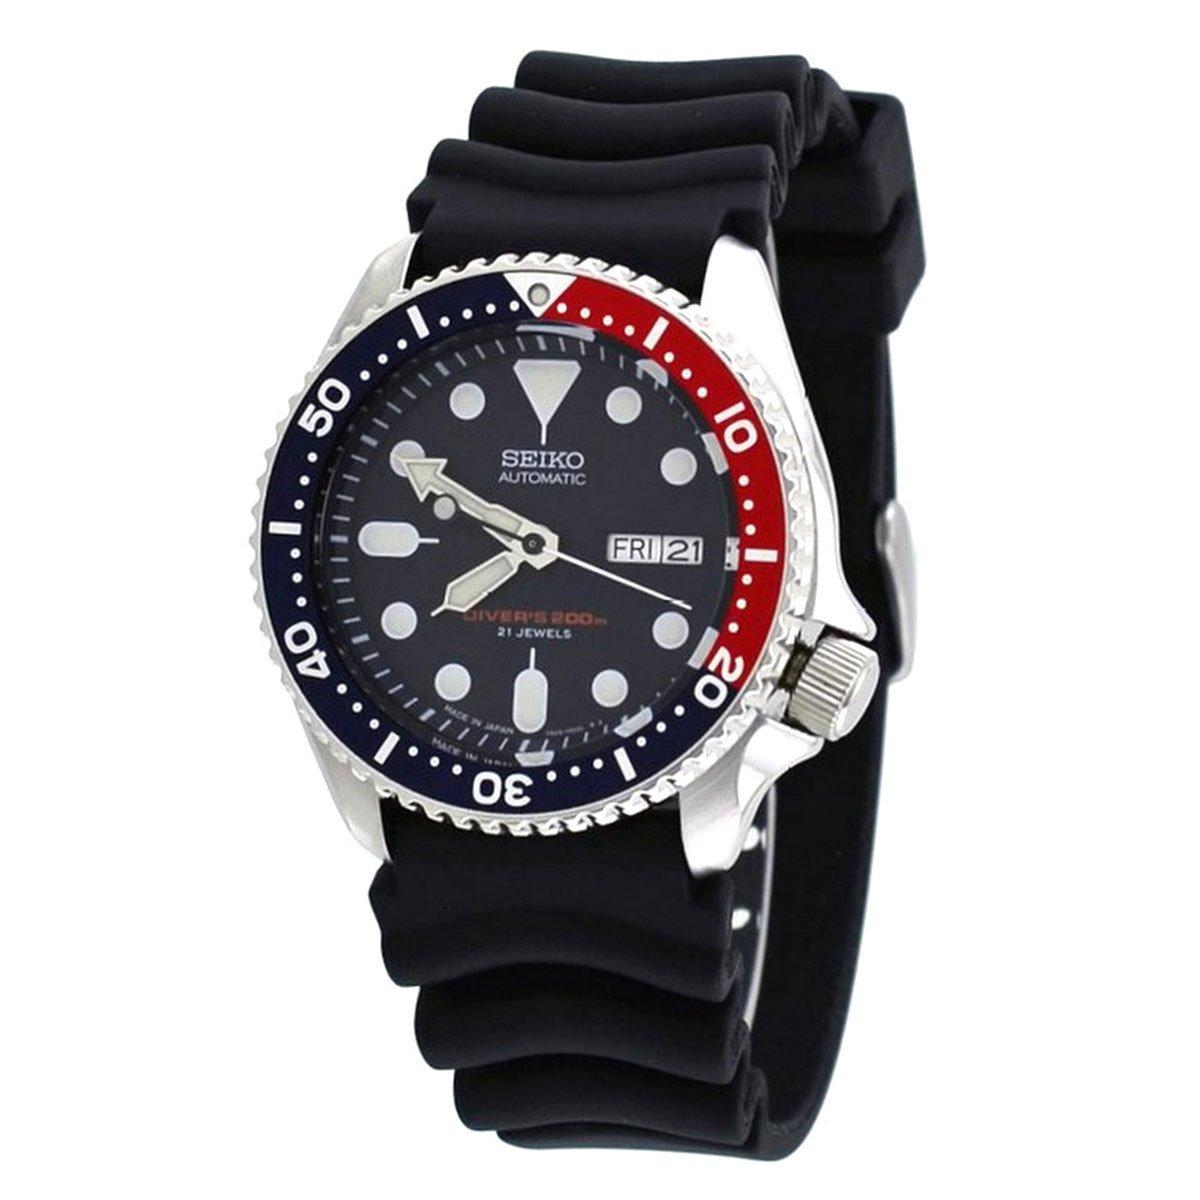 For Sale Seiko Seiko Automatic Diver S Black Stainless Steel Case Rubber Strap Mens Japan Skx009J1